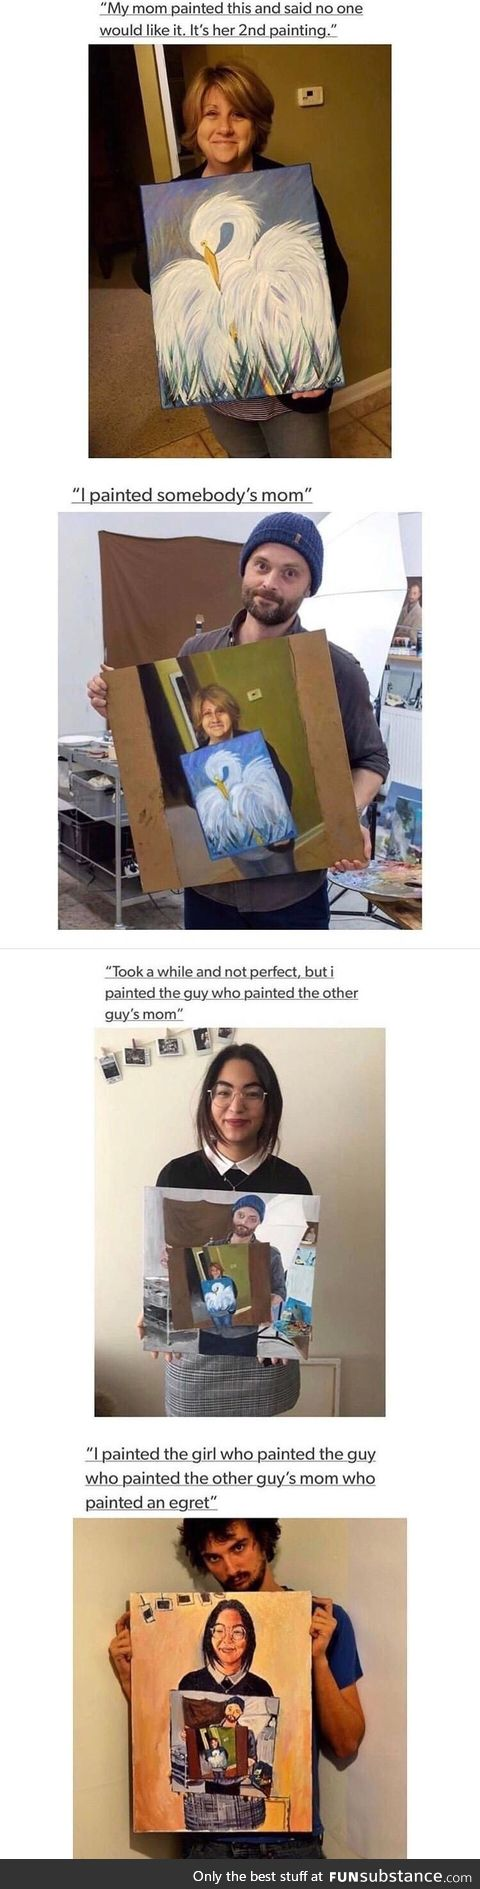 Some talented painters that have too much time